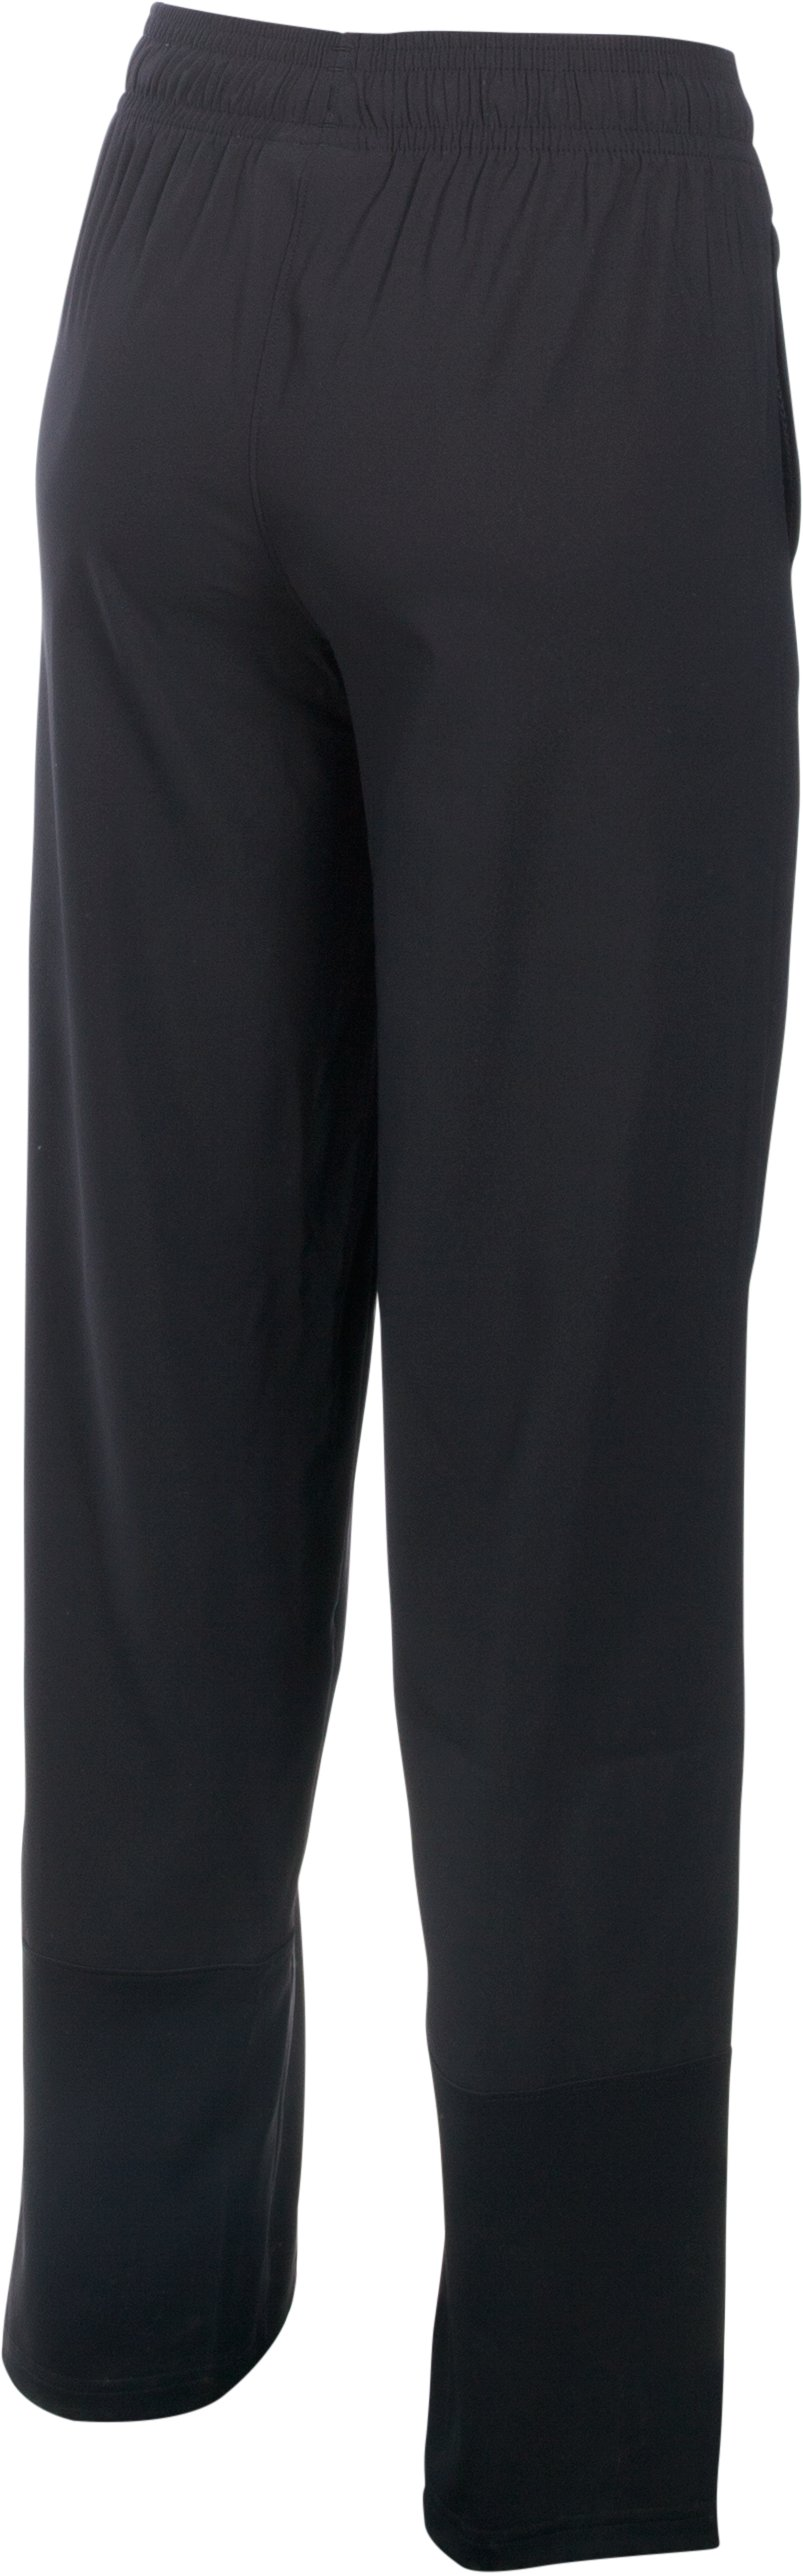 Women's Pre-Game Woven Pants, Black , undefined